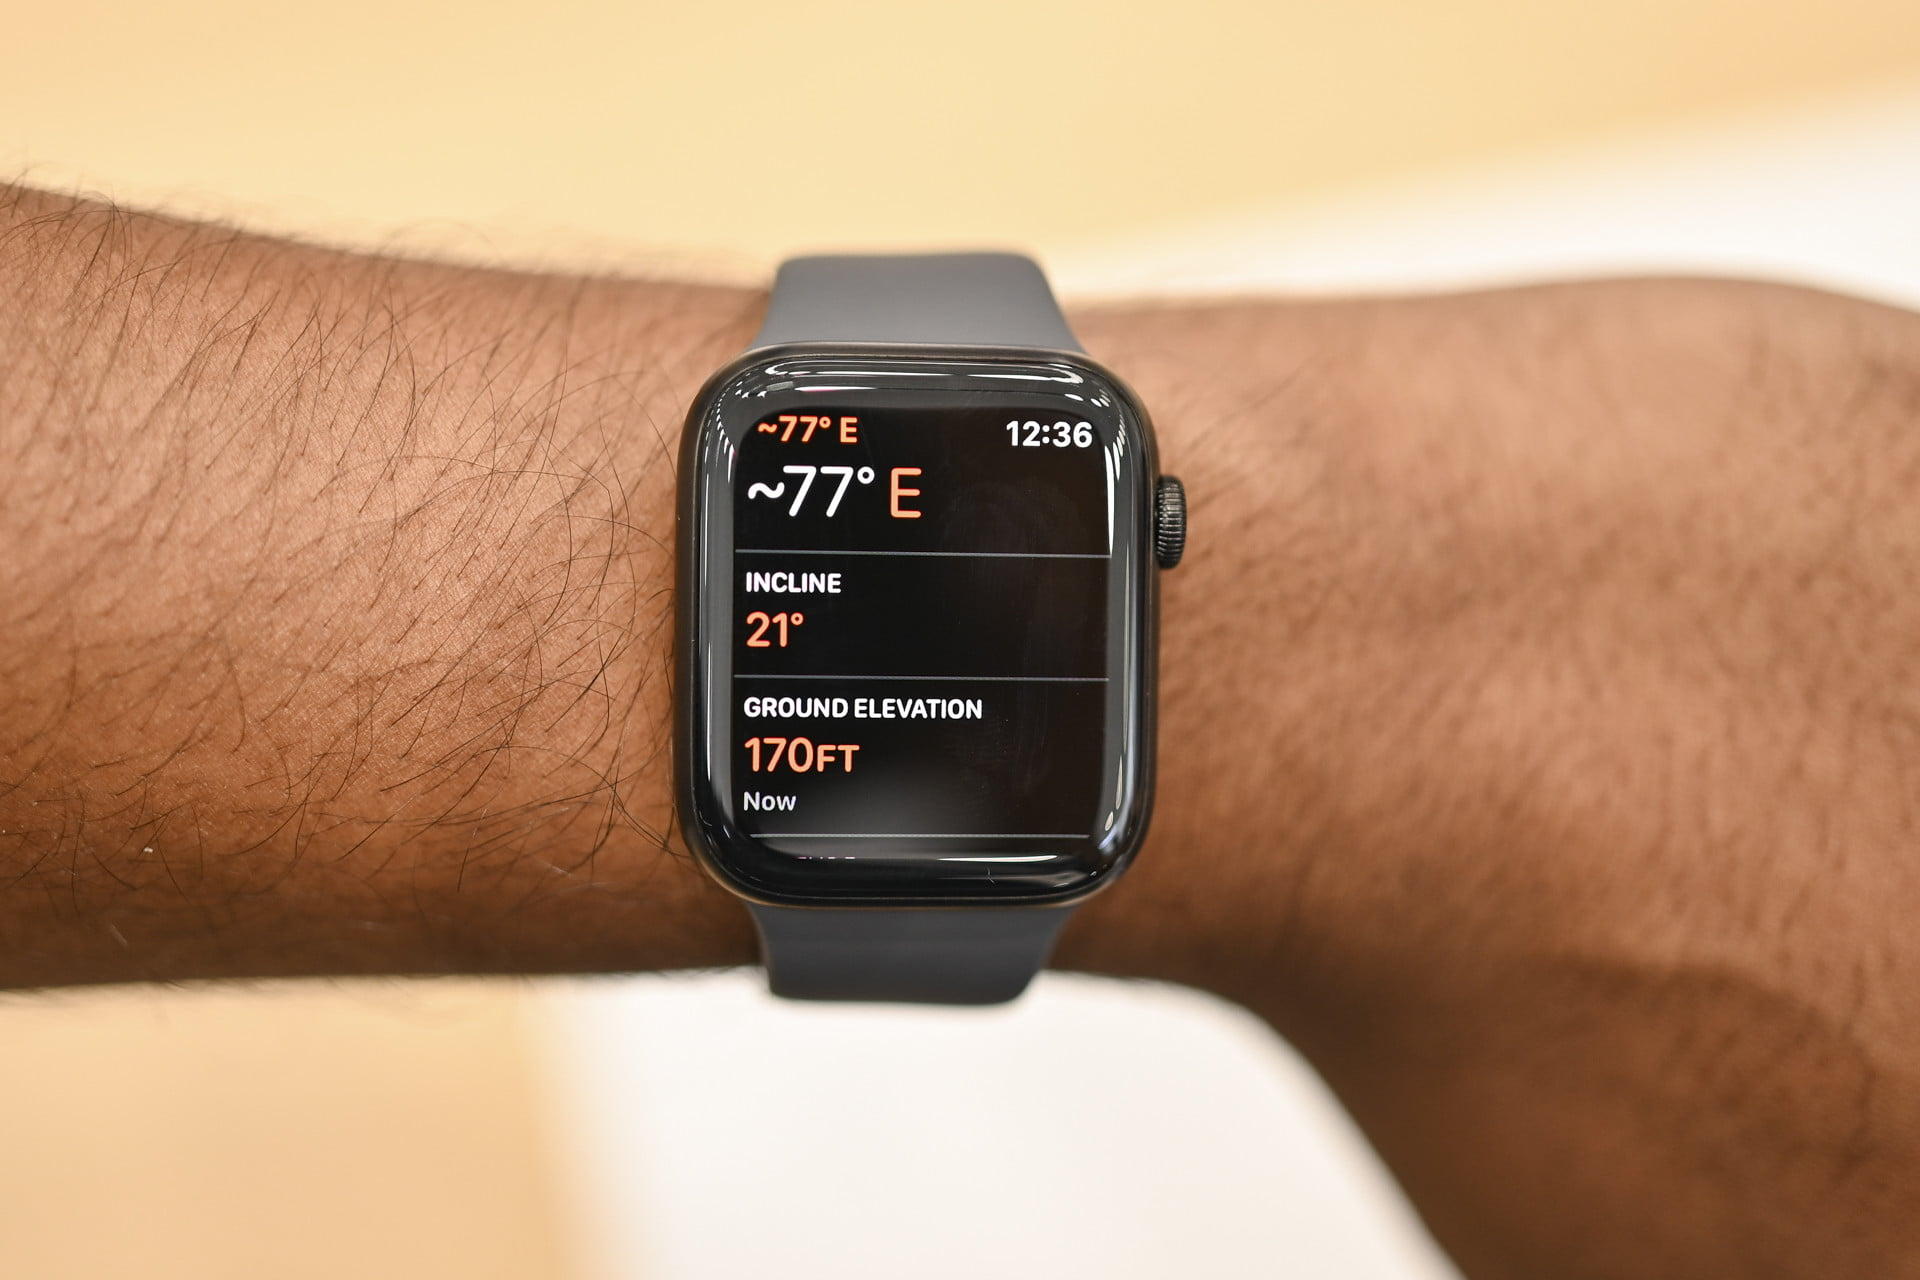 Apple Watch Series 5 Hands-on Review: Still the Best